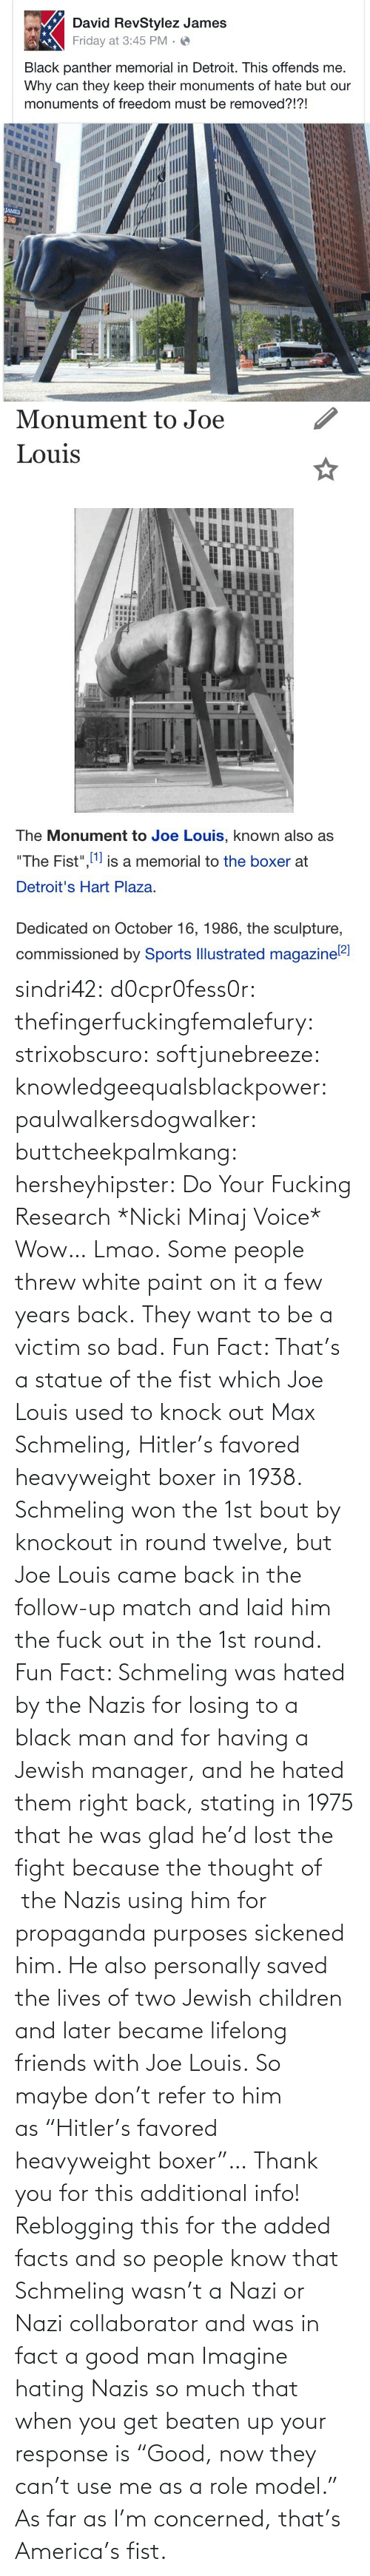 "Bad: sindri42:  d0cpr0fess0r:  thefingerfuckingfemalefury:  strixobscuro:  softjunebreeze:  knowledgeequalsblackpower:  paulwalkersdogwalker:   buttcheekpalmkang:   hersheyhipster:  Do Your Fucking Research *Nicki Minaj Voice*    Wow… Lmao.   Some people threw white paint on it a few years back.   They want to be a victim so bad.  Fun Fact: That's a statue of the fist which Joe Louis used to knock out Max Schmeling, Hitler's favored heavyweight boxer in 1938. Schmeling won the 1st bout by knockout in round twelve, but Joe Louis came back in the follow-up match and laid him the fuck out in the 1st round.  Fun Fact: Schmeling was hated by the Nazis for losing to a black man and for having a Jewish manager, and he hated them right back, stating in 1975 that he was glad he'd lost the fight because the thought of  the Nazis using him for propaganda purposes sickened him. He also personally saved the lives of two Jewish children and later became lifelong friends with Joe Louis. So maybe don't refer to him as ""Hitler's favored heavyweight boxer""…  Thank you for this additional info! Reblogging this for the added facts and so people know that Schmeling wasn't a Nazi or Nazi collaborator and was in fact a good man   Imagine hating Nazis so much that when you get beaten up your response is ""Good, now they can't use me as a role model.""  As far as I'm concerned, that's America's fist."